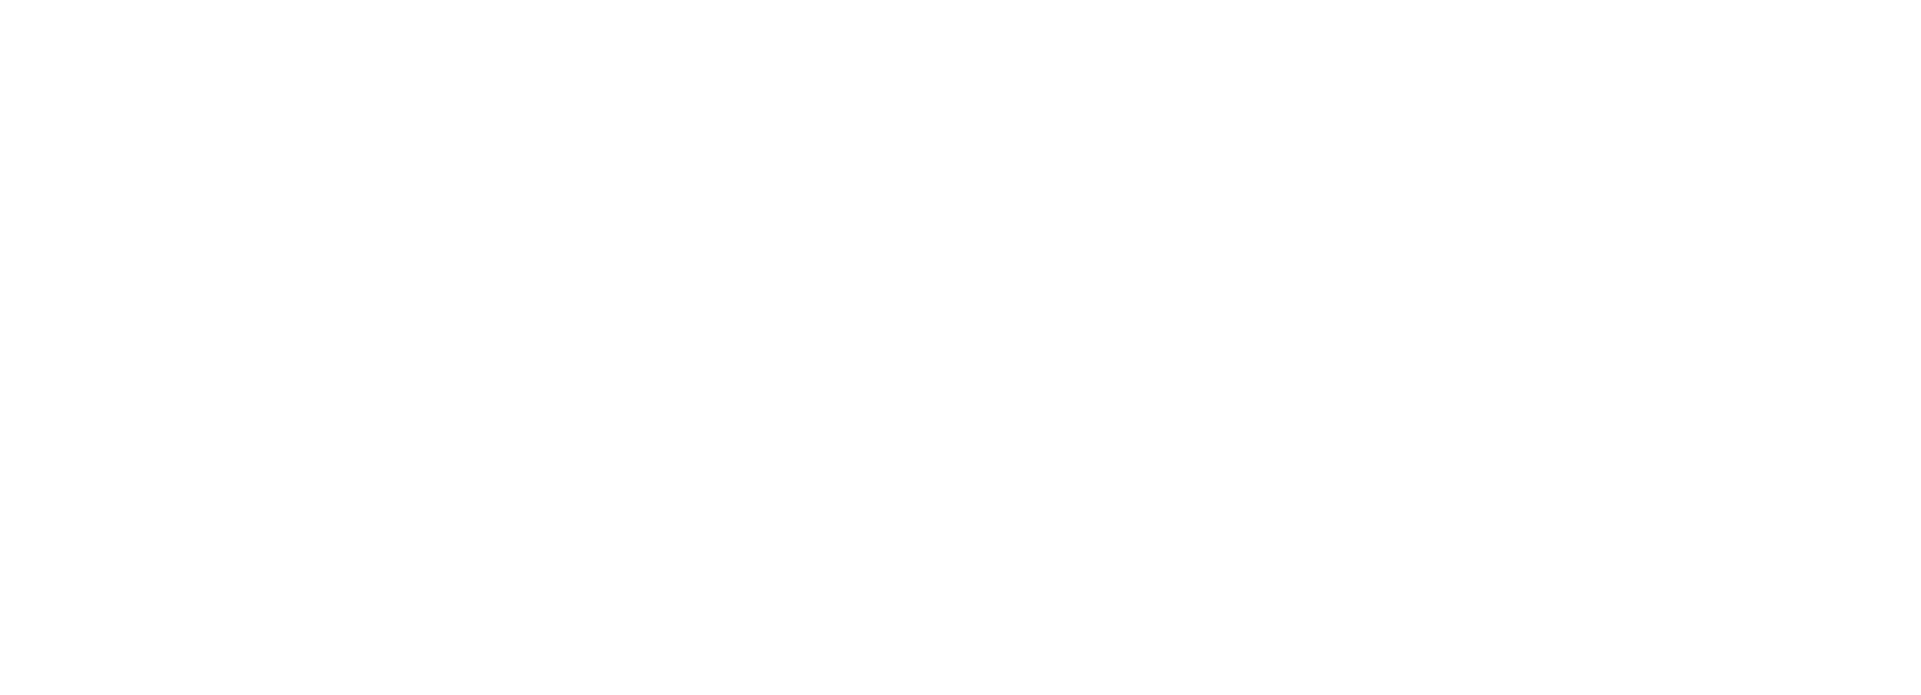 unplugged logo.png